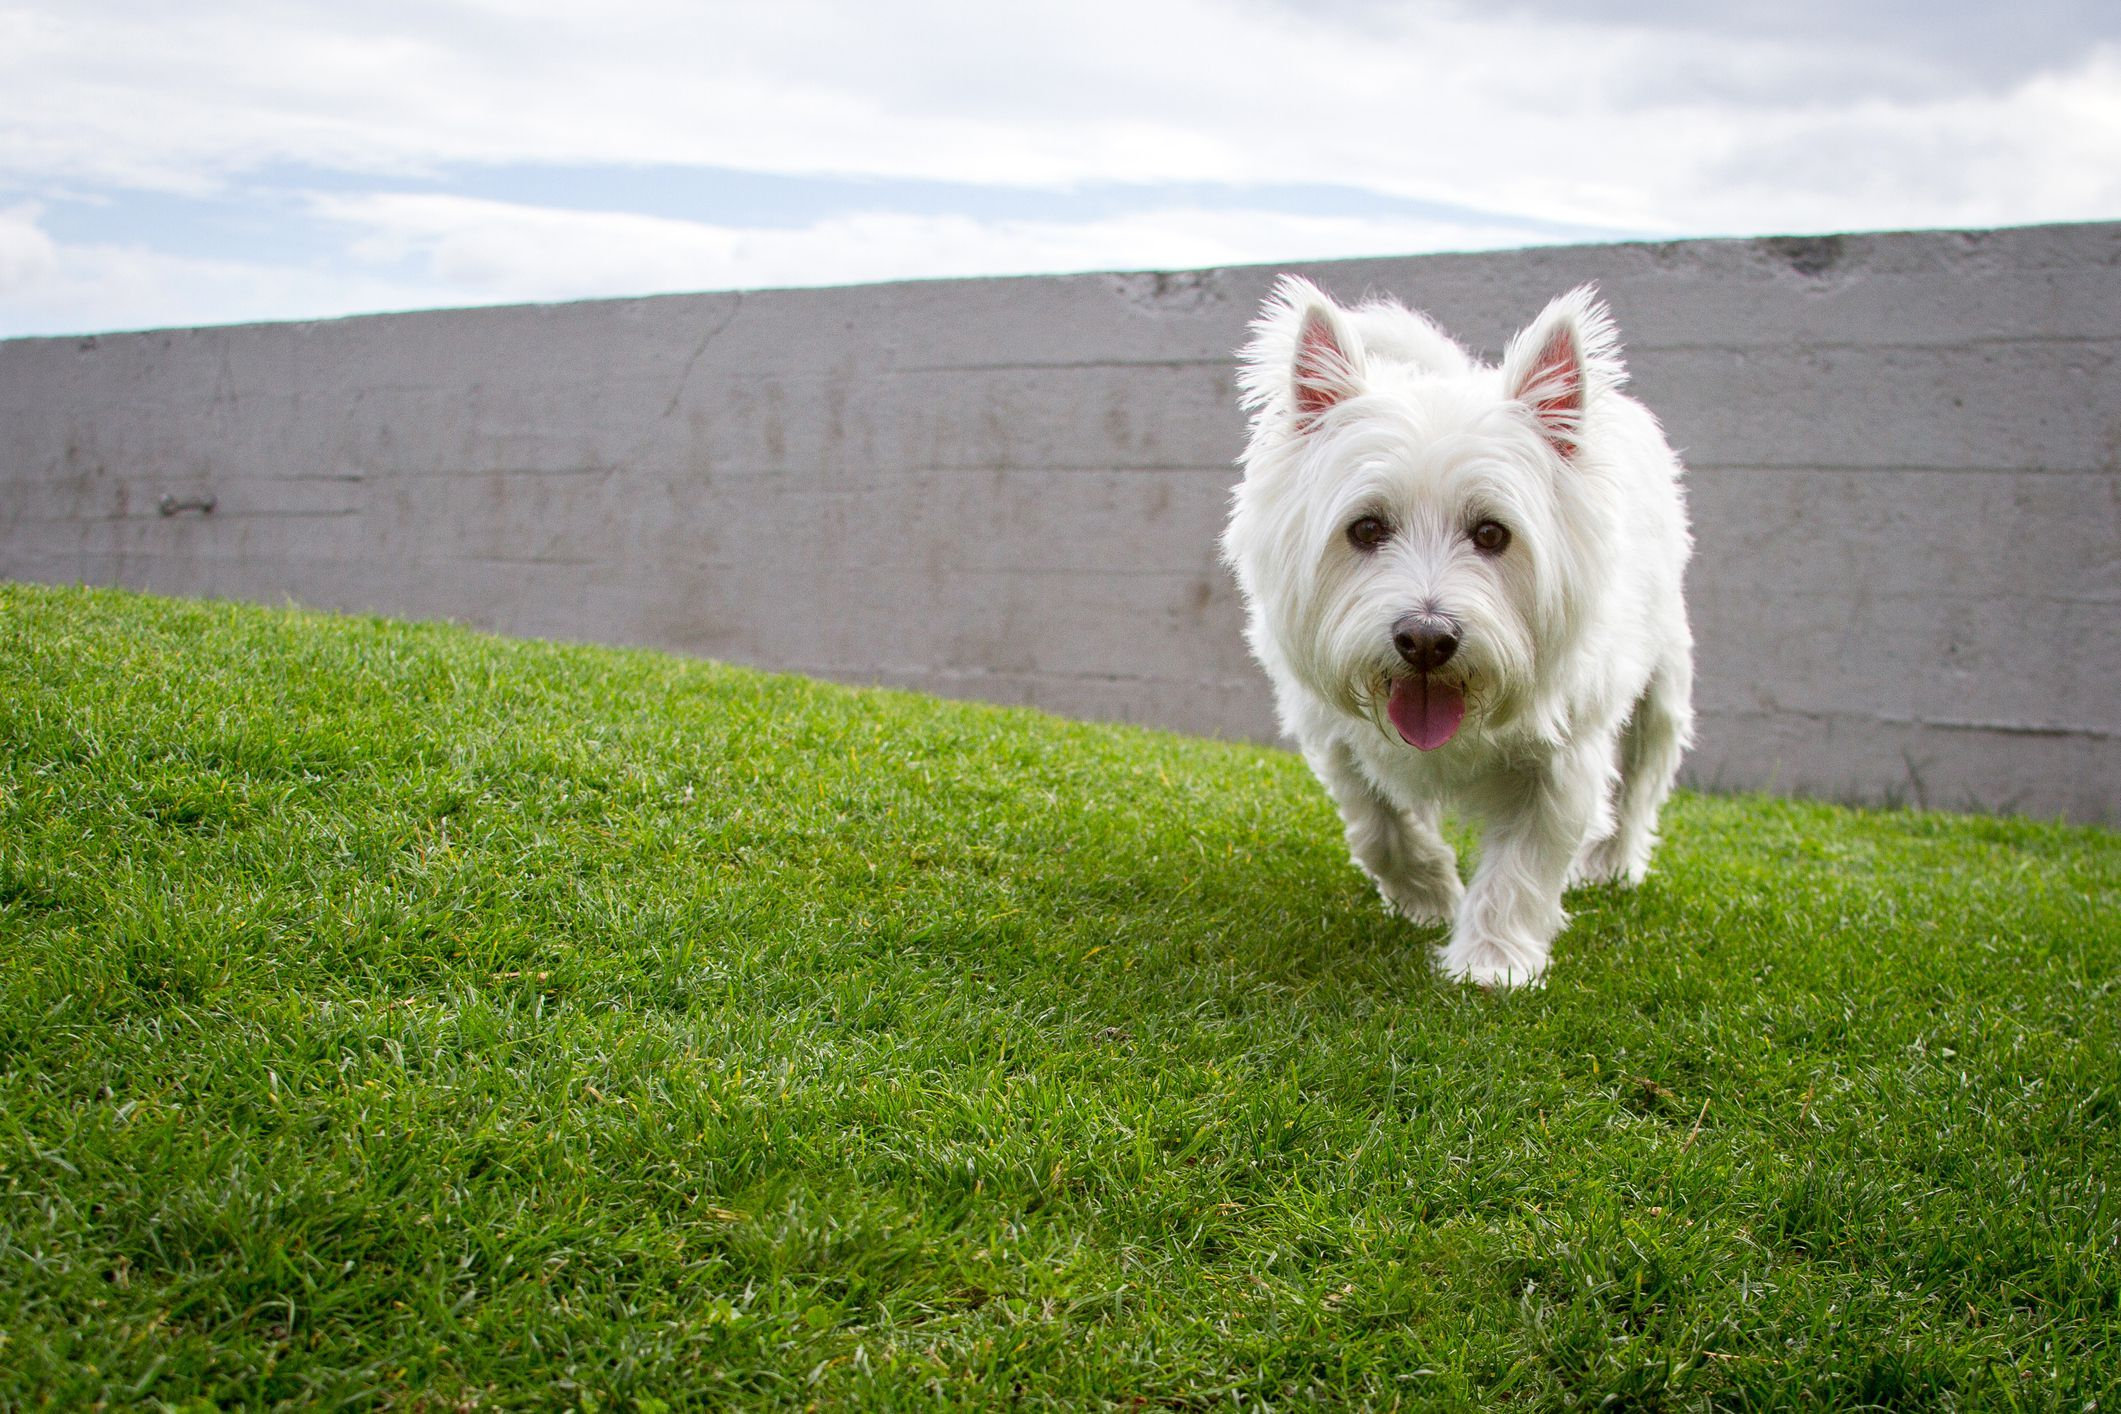 The West Highland White Terrier Is A Lively And Loyal Little Dog That S Suitable For Families That Includ In 2020 Westie Dogs West Highland White Terrier White Terrier